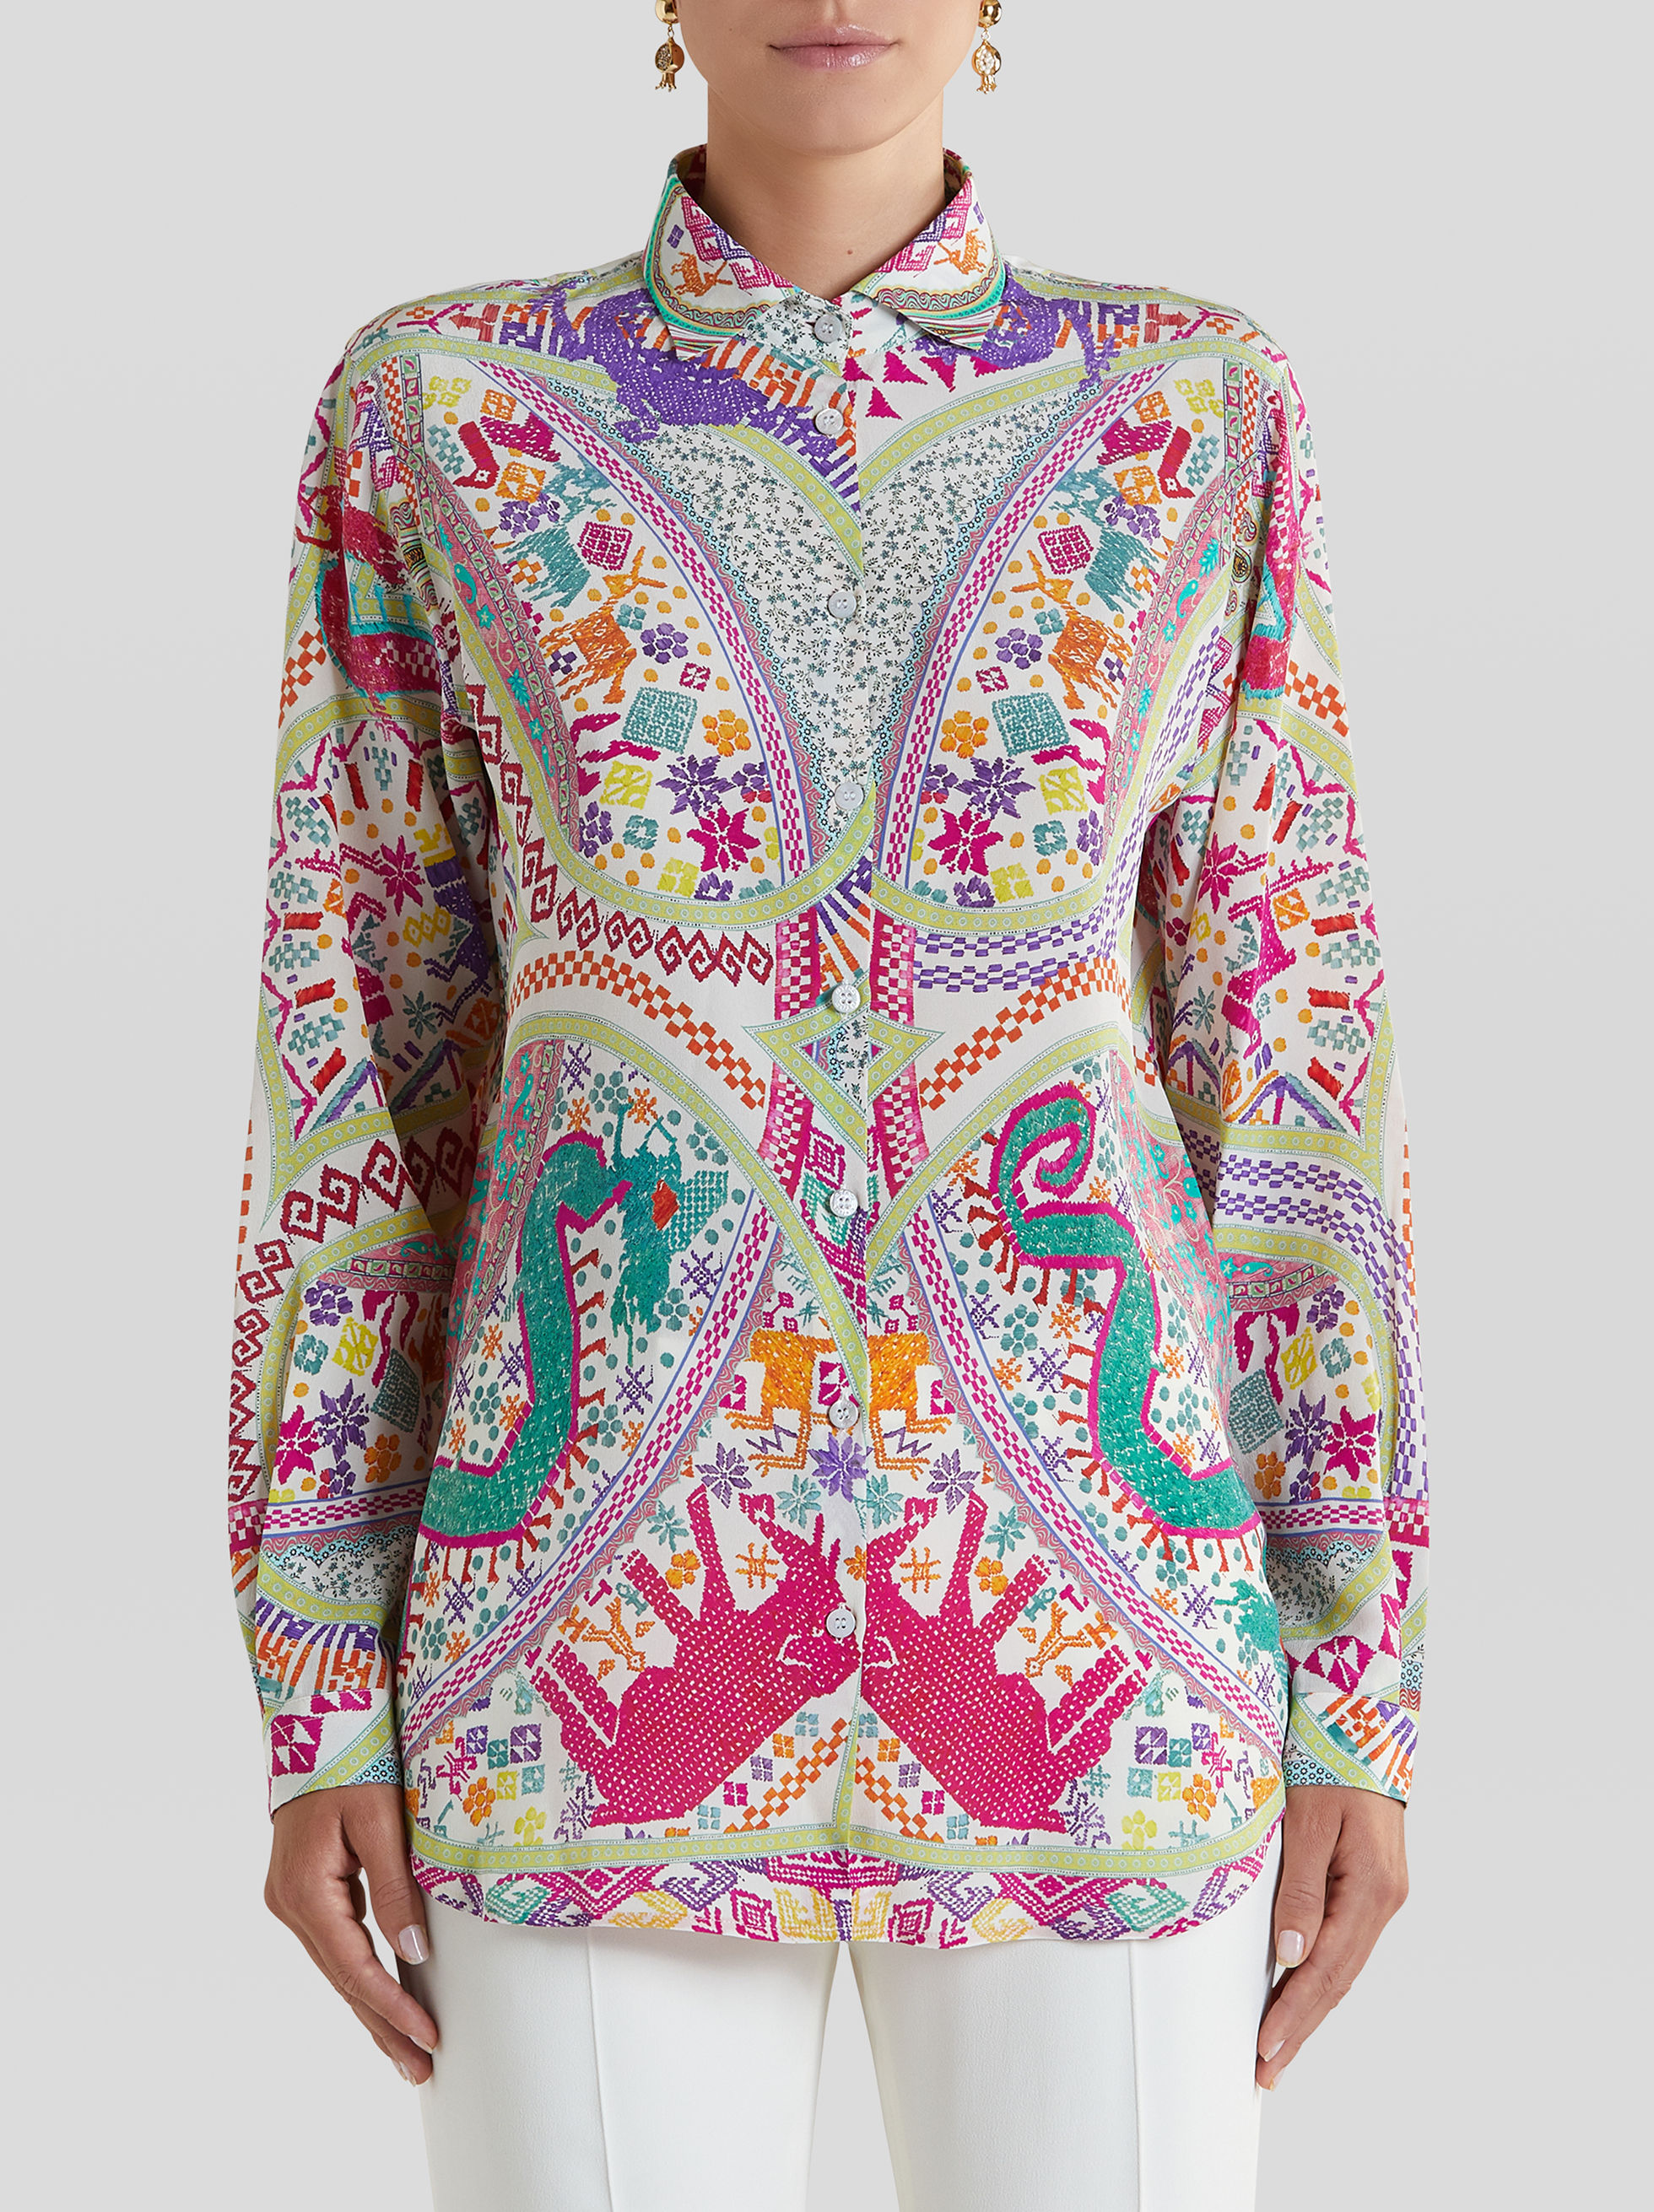 EMBROIDERY-EFFECT PRINT CRÊPE DE CHINE SHIRT